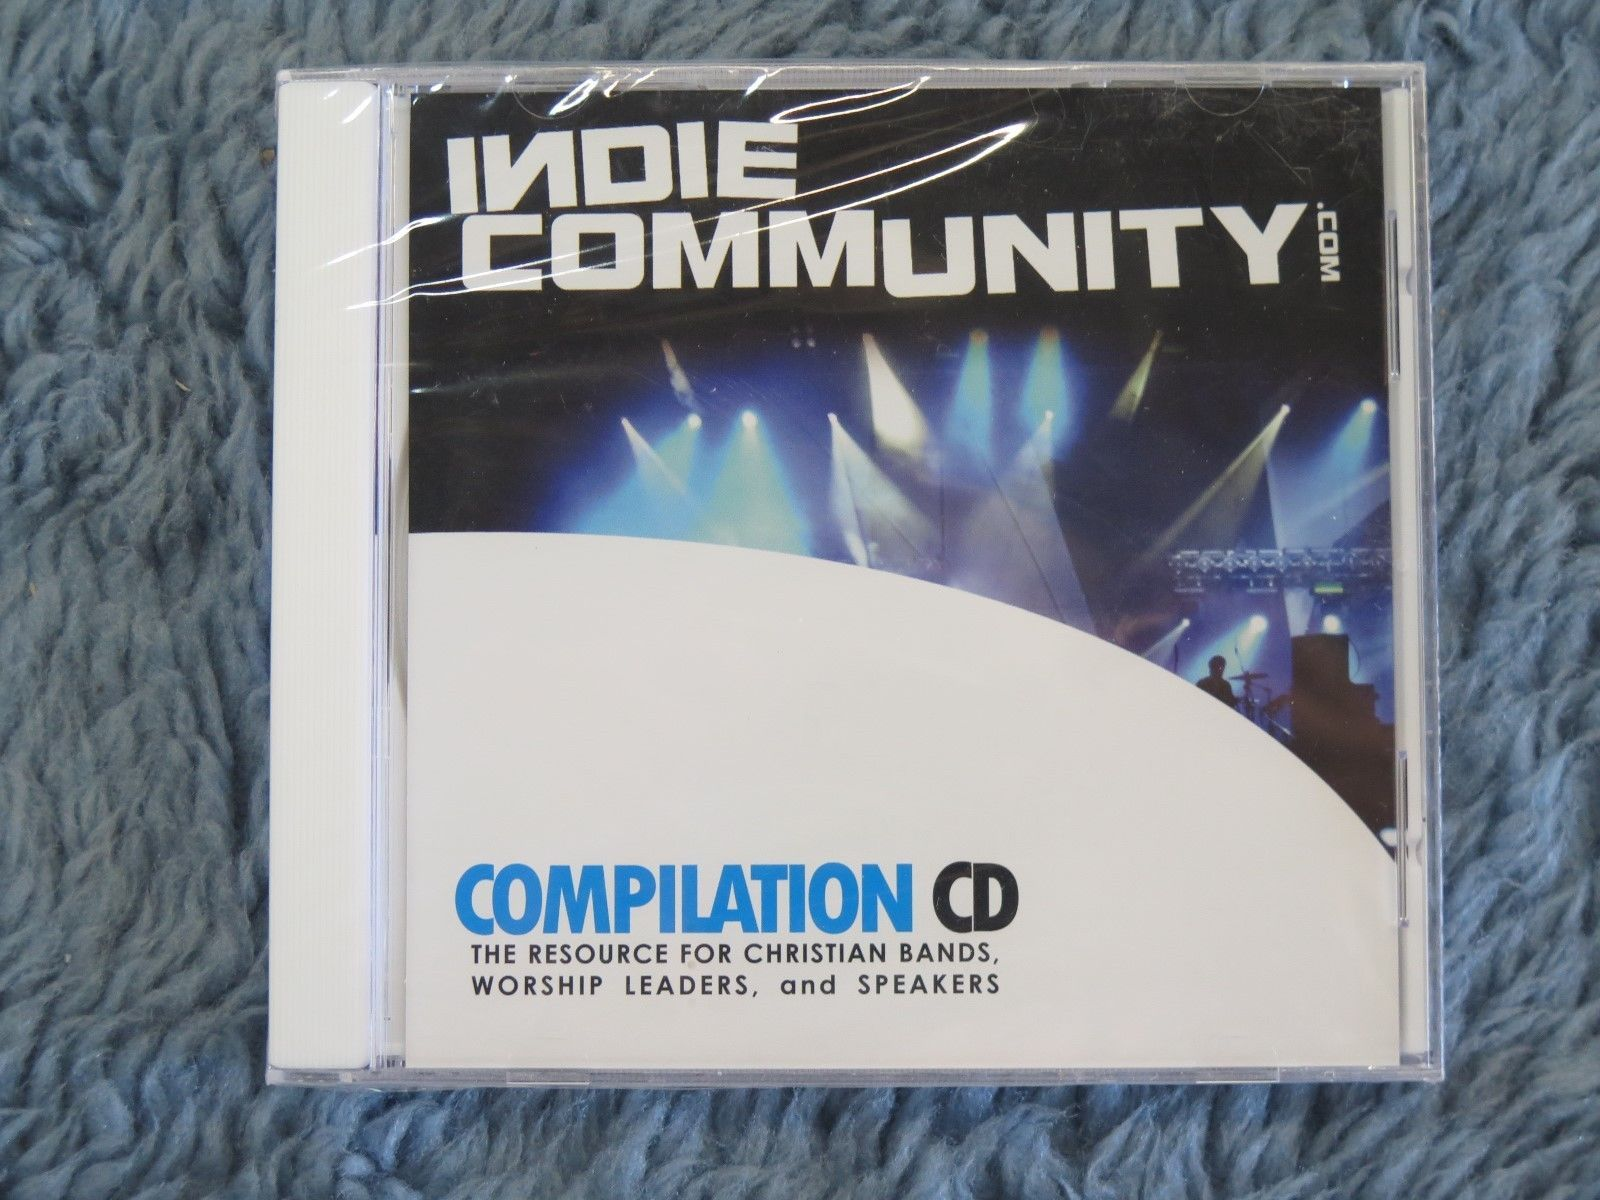 Primary image for Indie Community Compilation CD Resource for Christian Bands, Worship Leaders